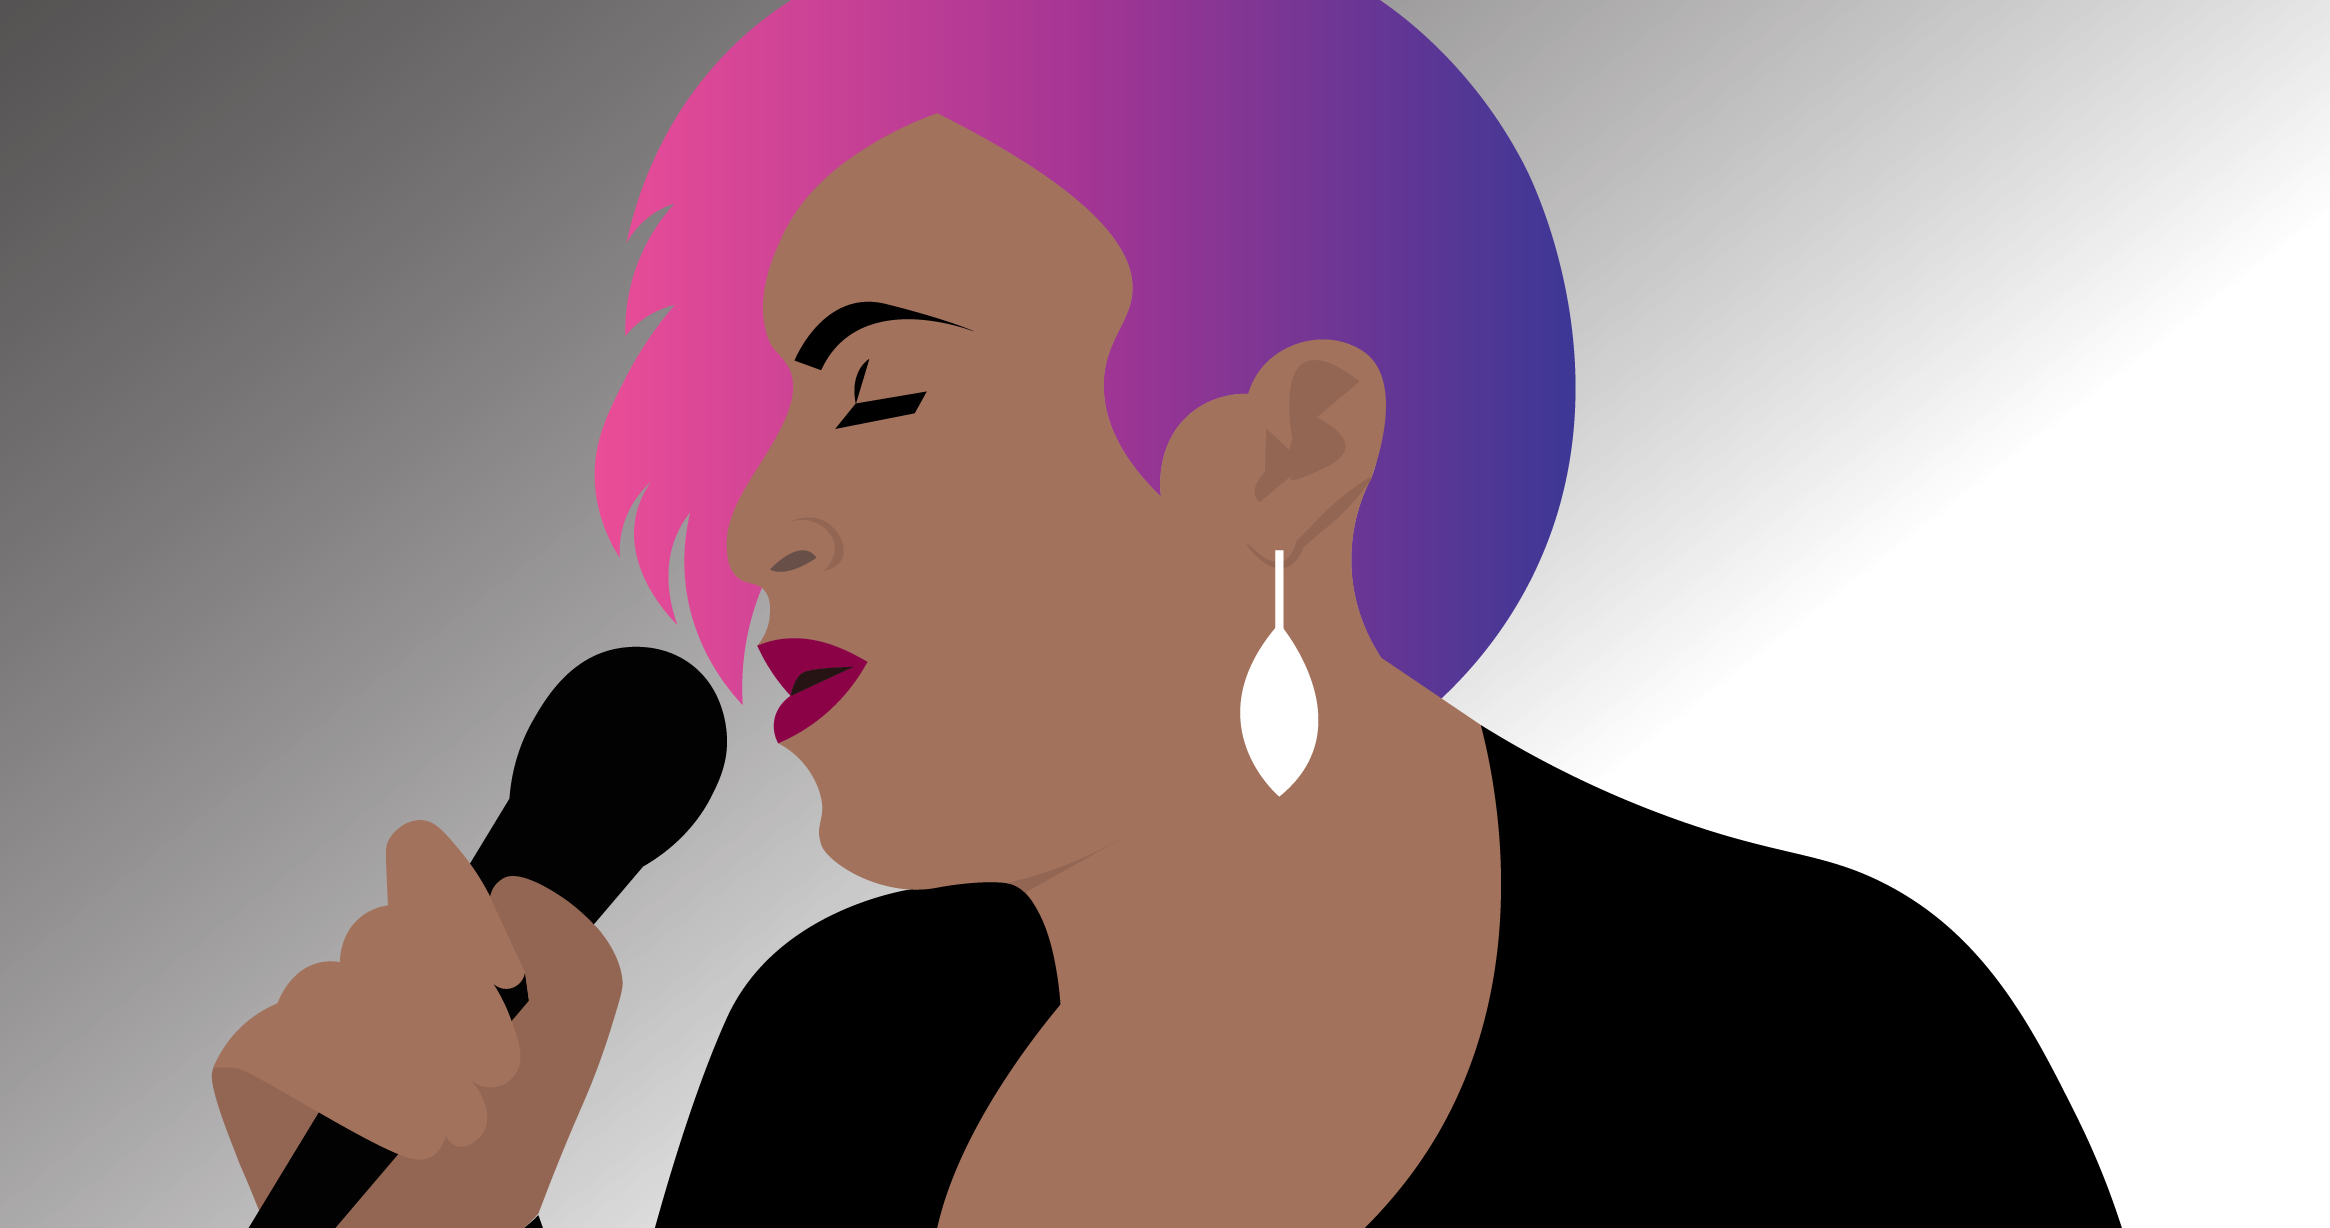 Woman With Pink Hair Speaking into Microphone